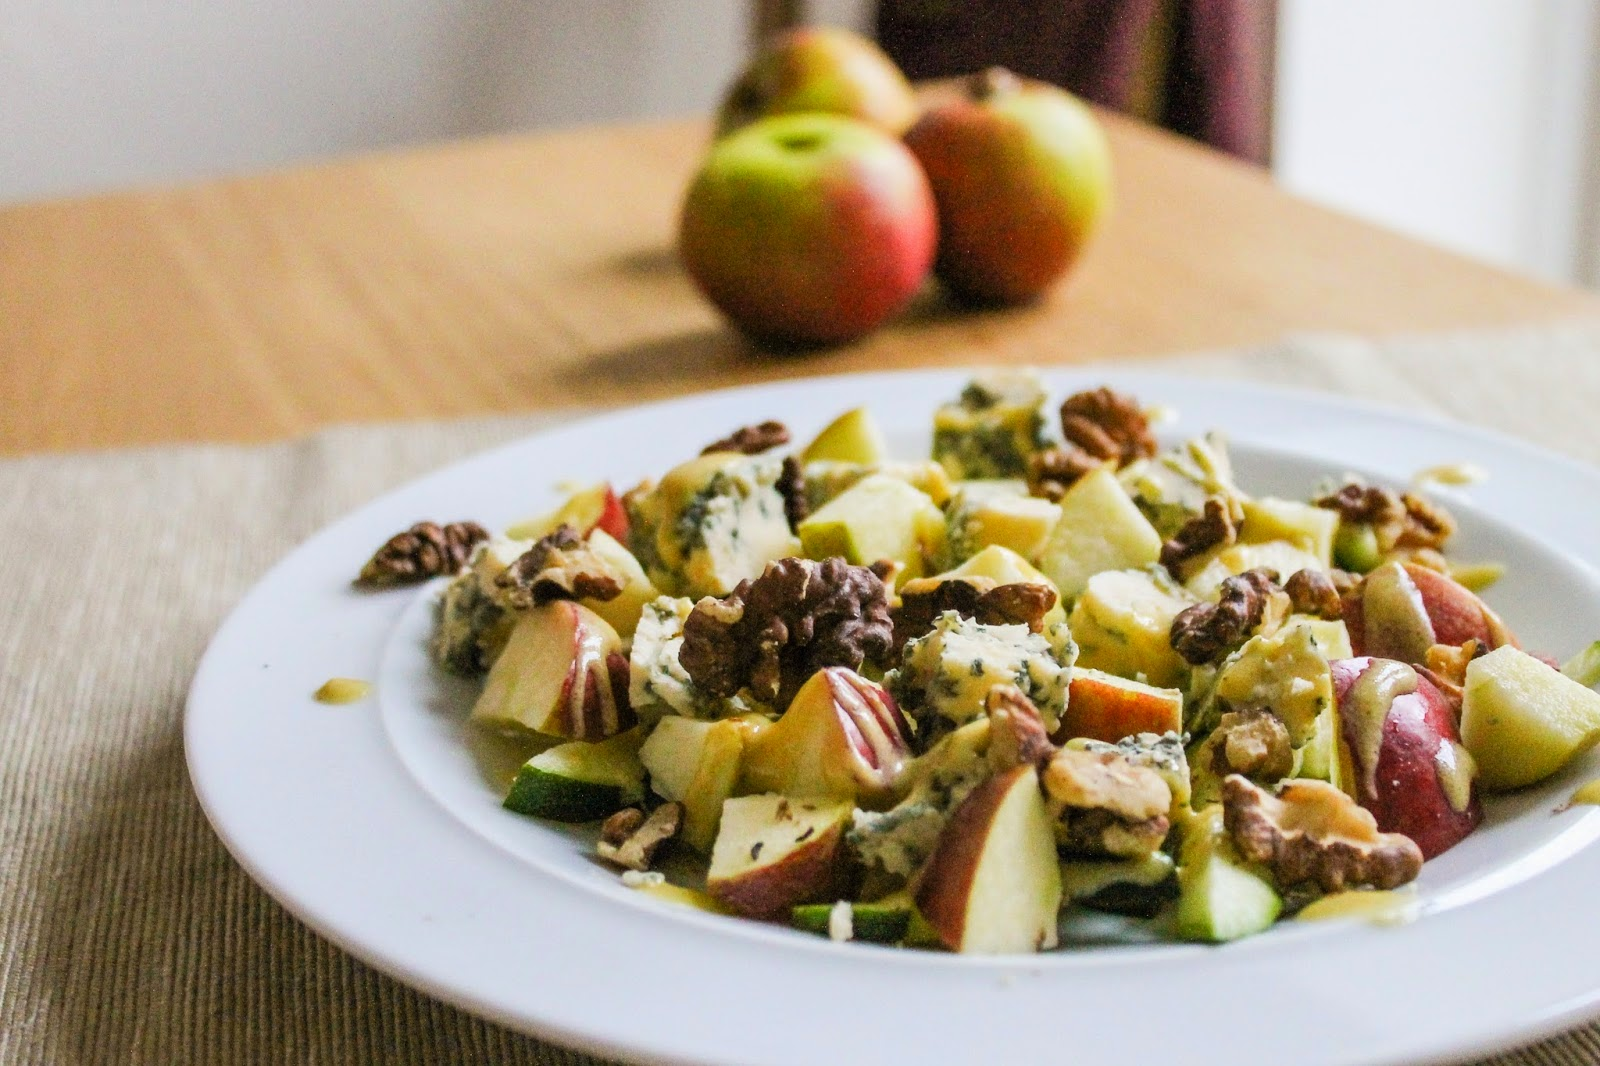 Stilton & Walnut Salad